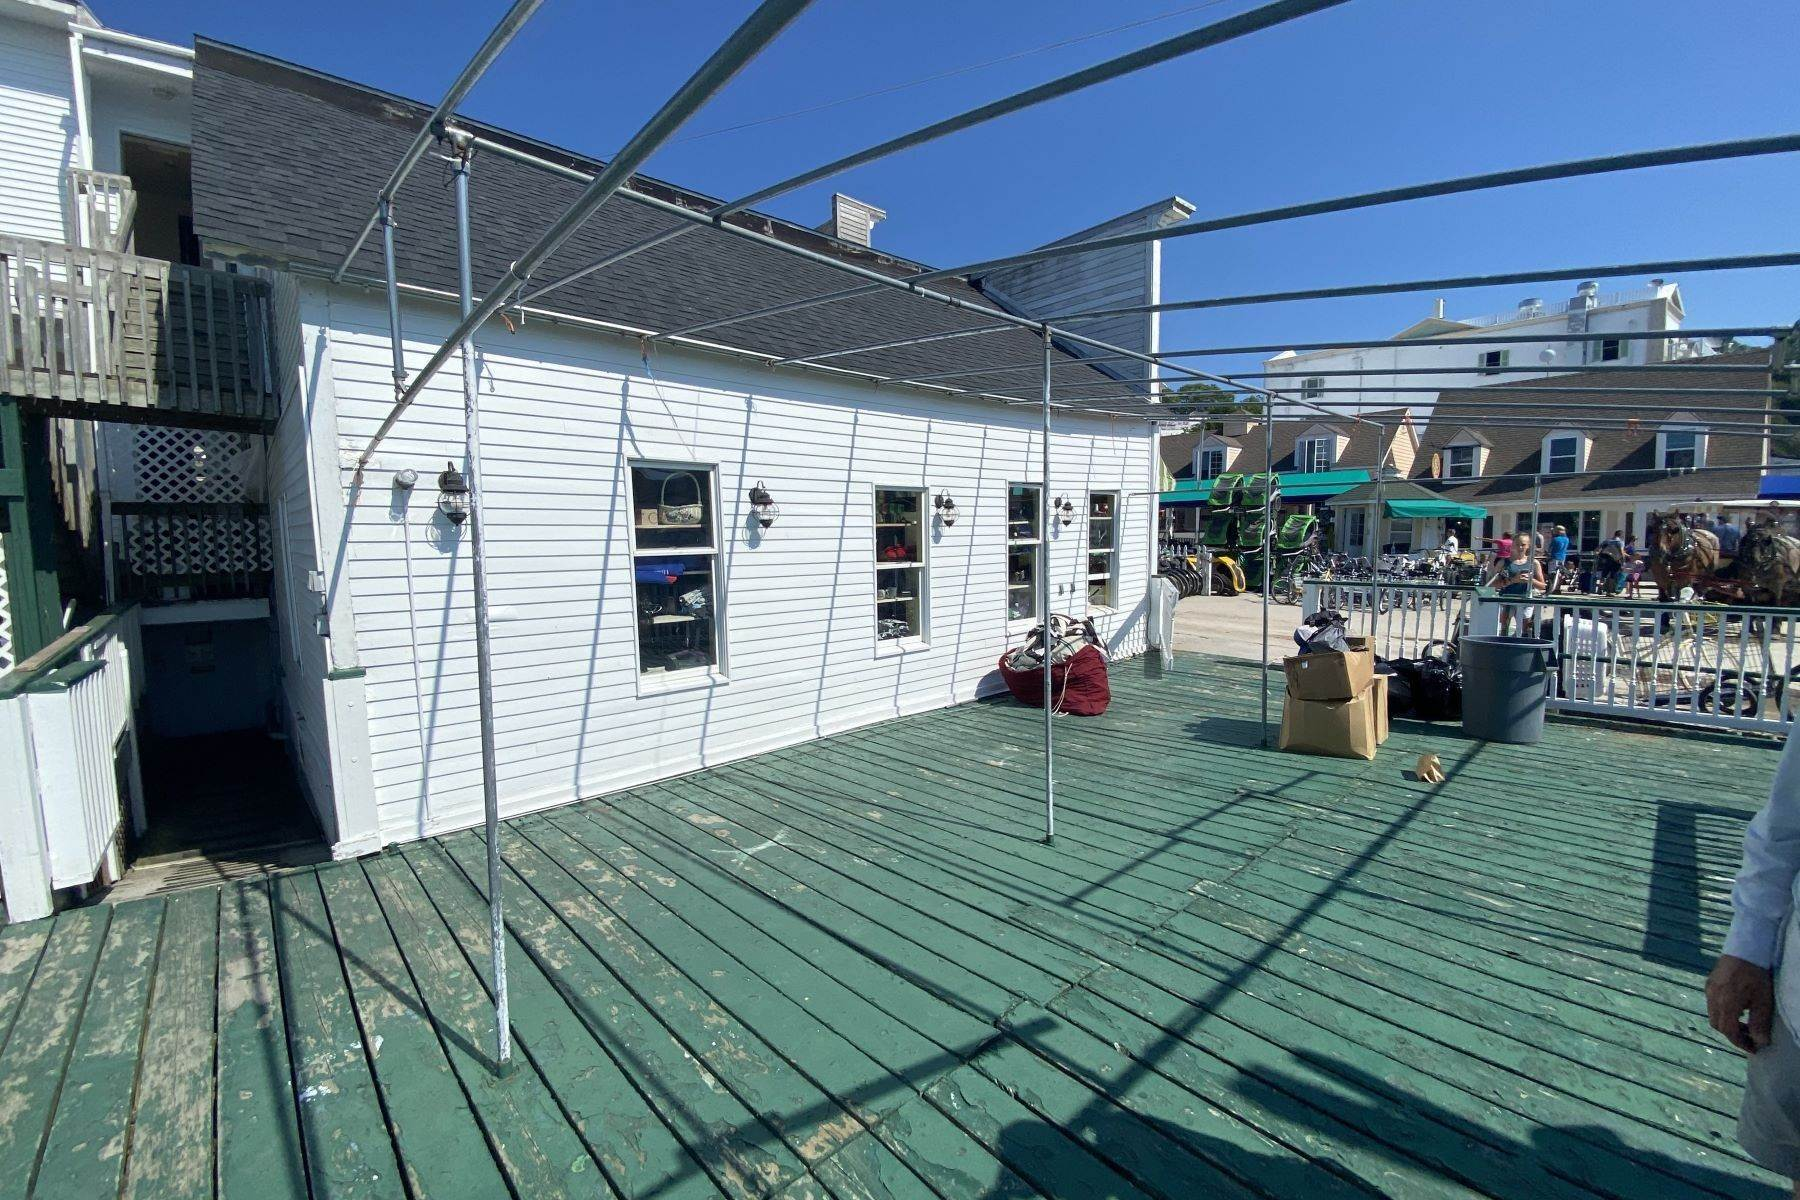 8. Commercial for Sale at Waterfront commercial building on Mackinac Island with retail space 7293 & 7279 Main Street Mackinac Island, Michigan 49757 United States